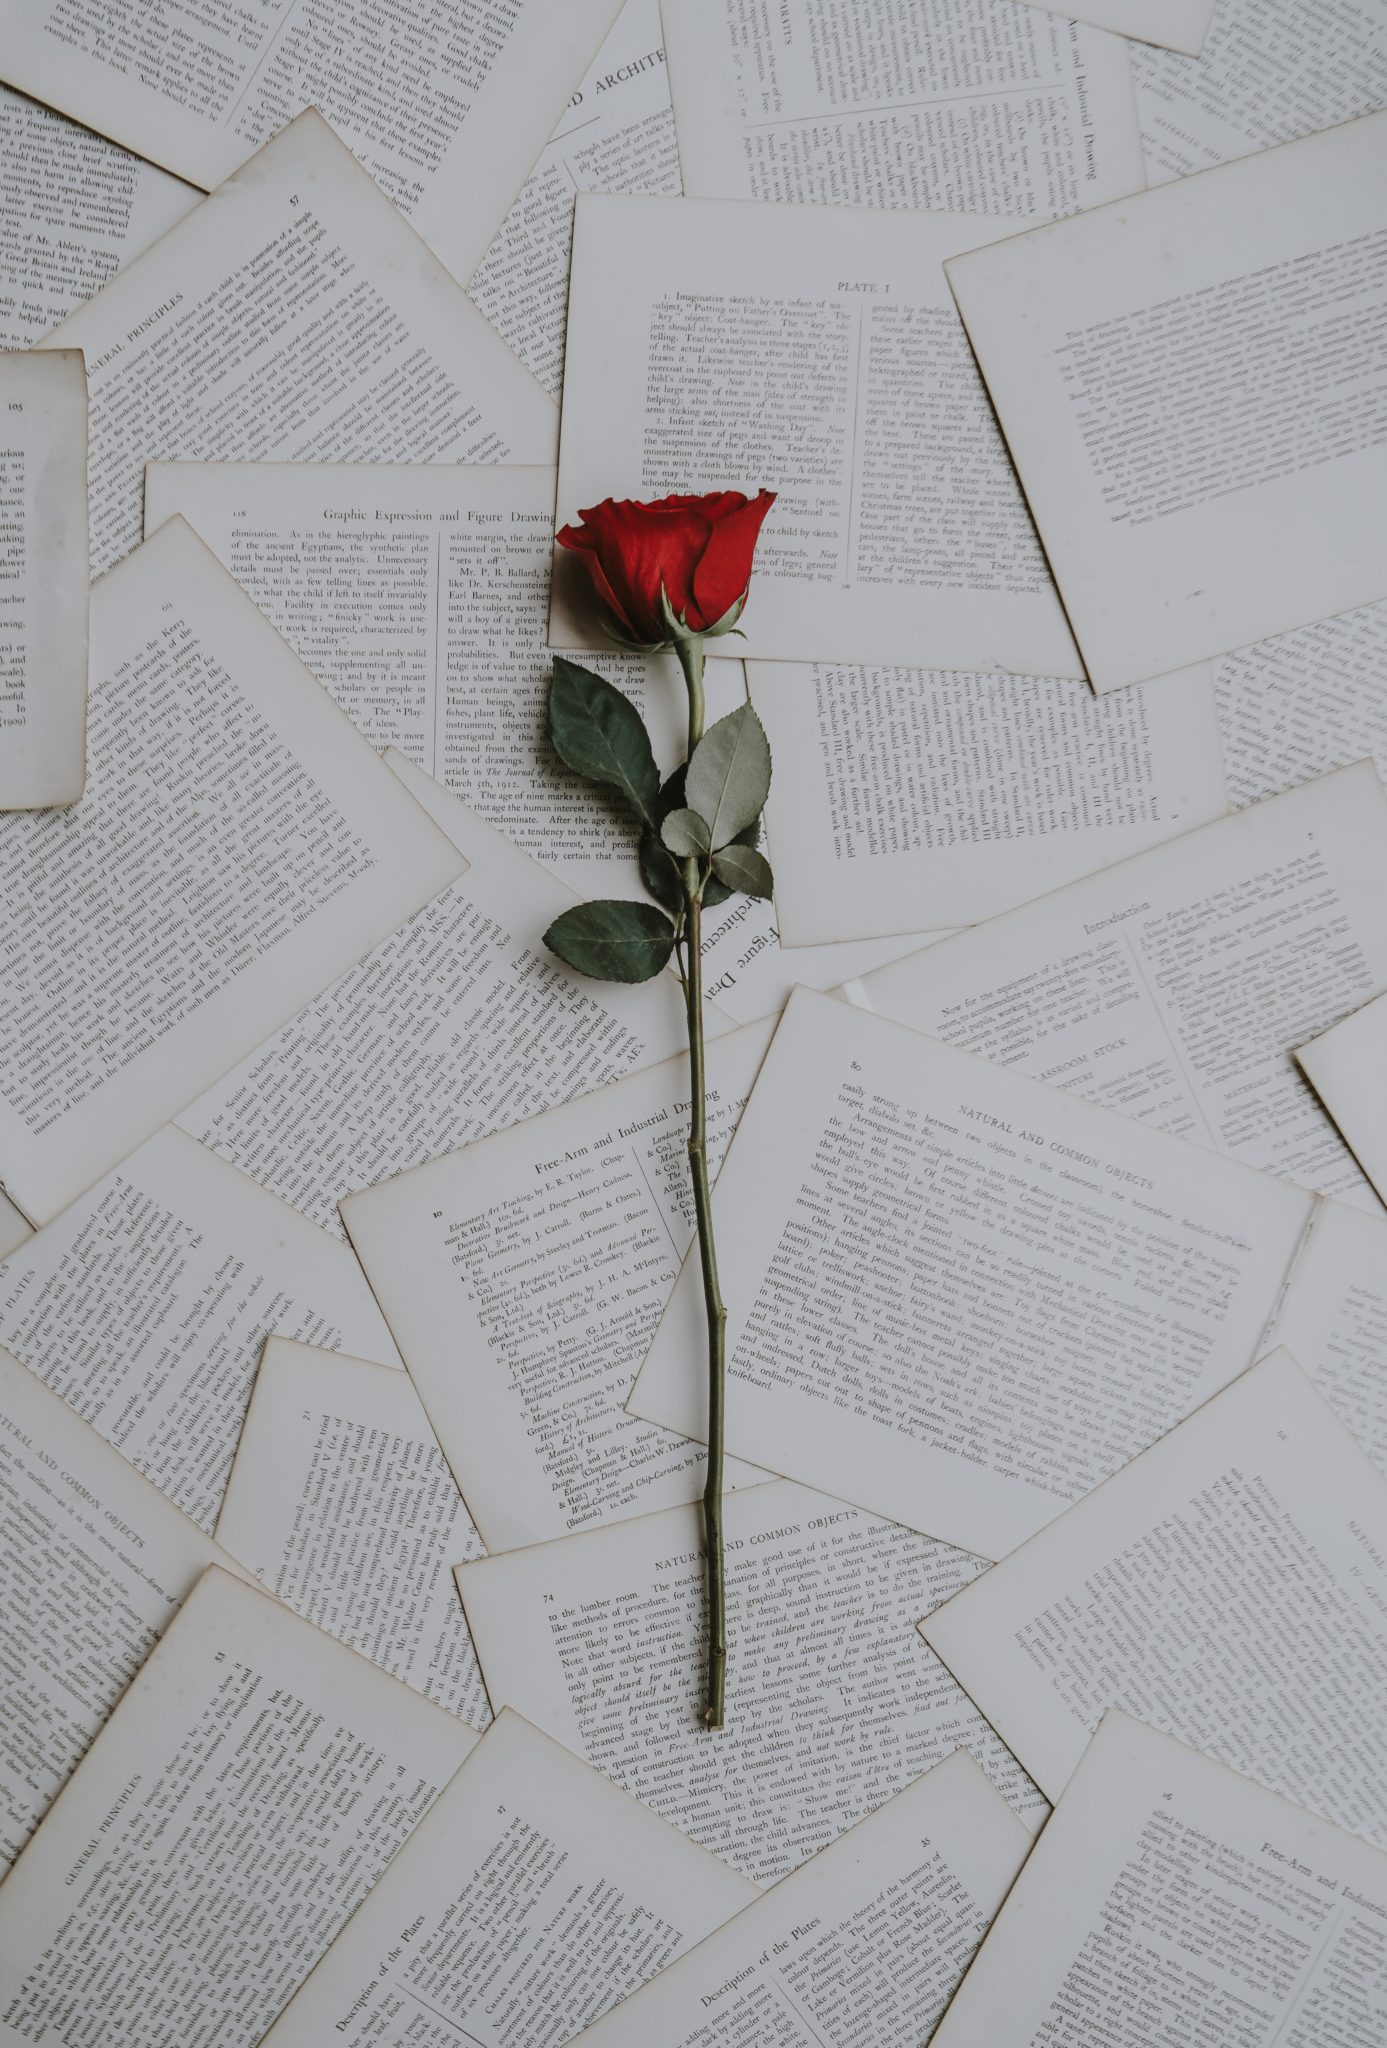 single red rose lying on book pages